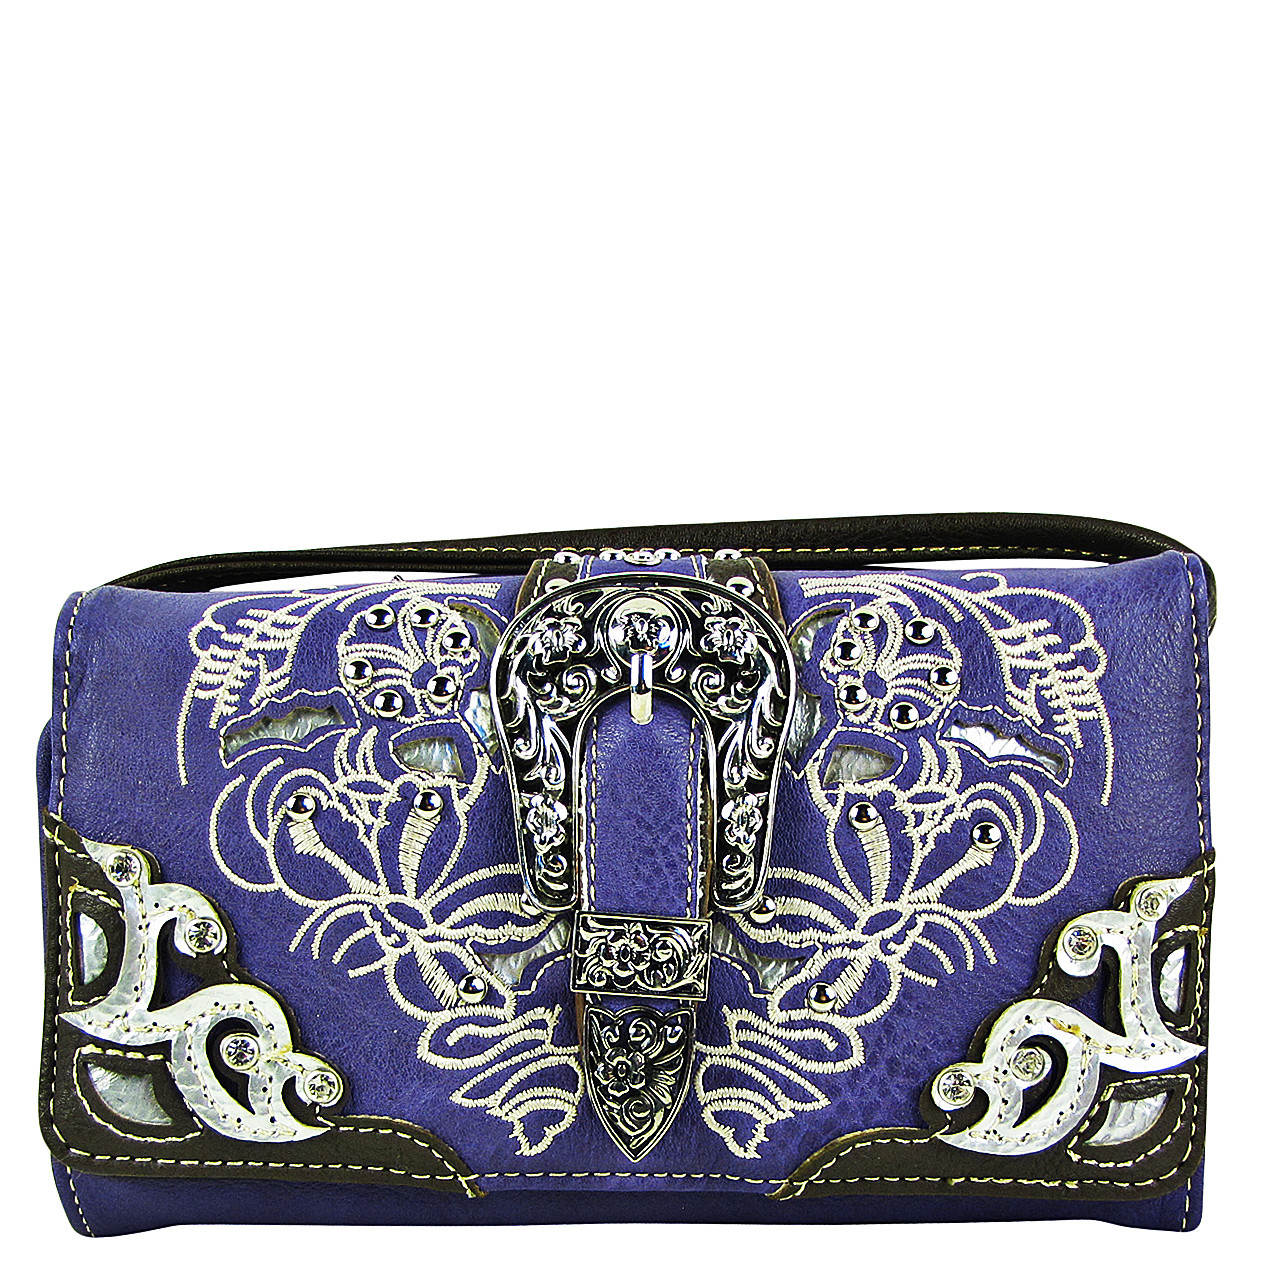 PURPLE STUDDED BUCKLE LOOK CLUTCH TRIFOLD WALLET CW1-1287PPL